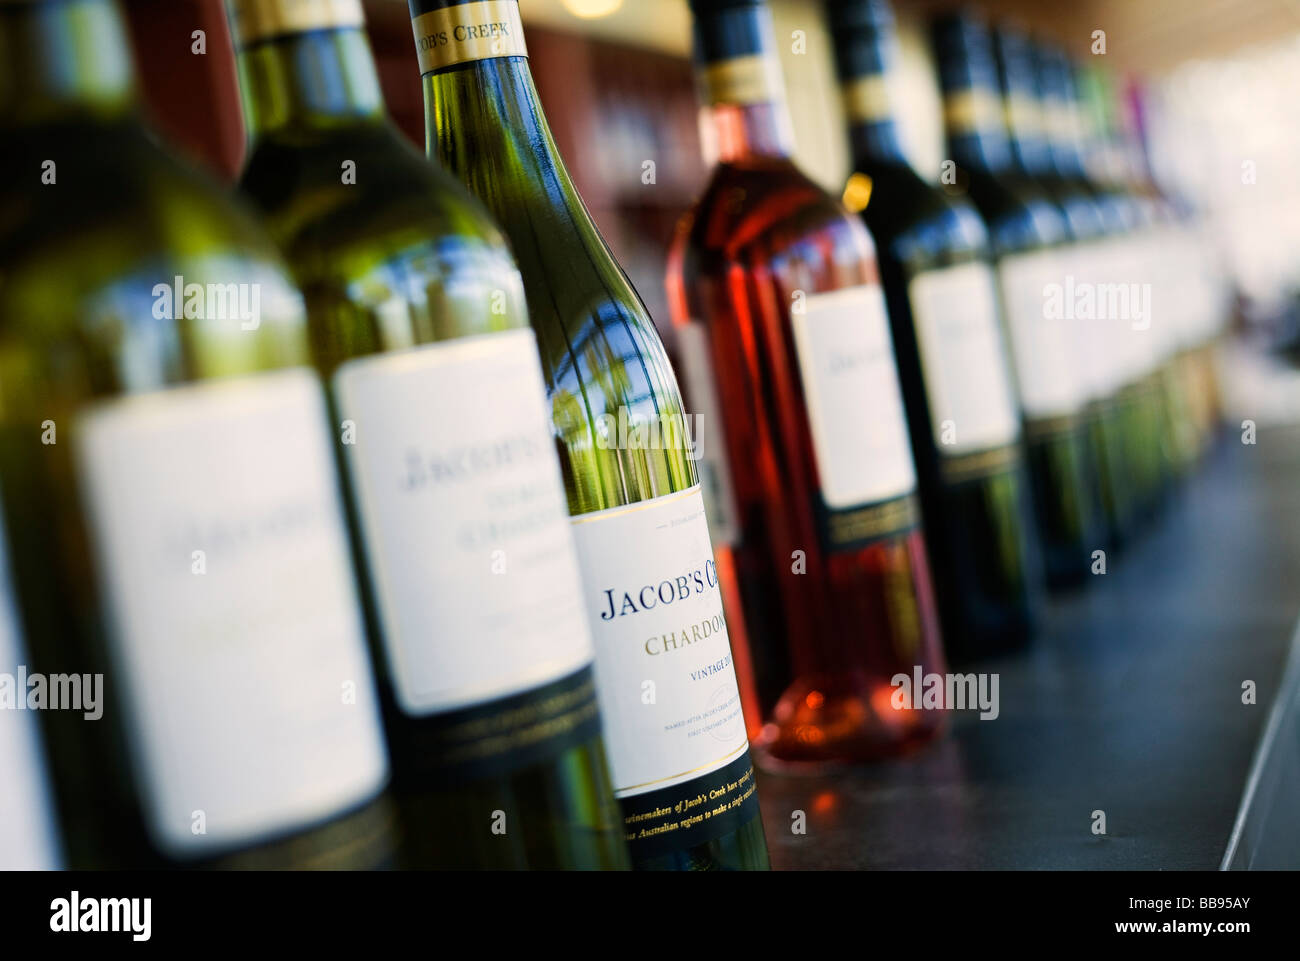 Wines Stock Photos & Wines Stock Images - Page 2 - Alamy